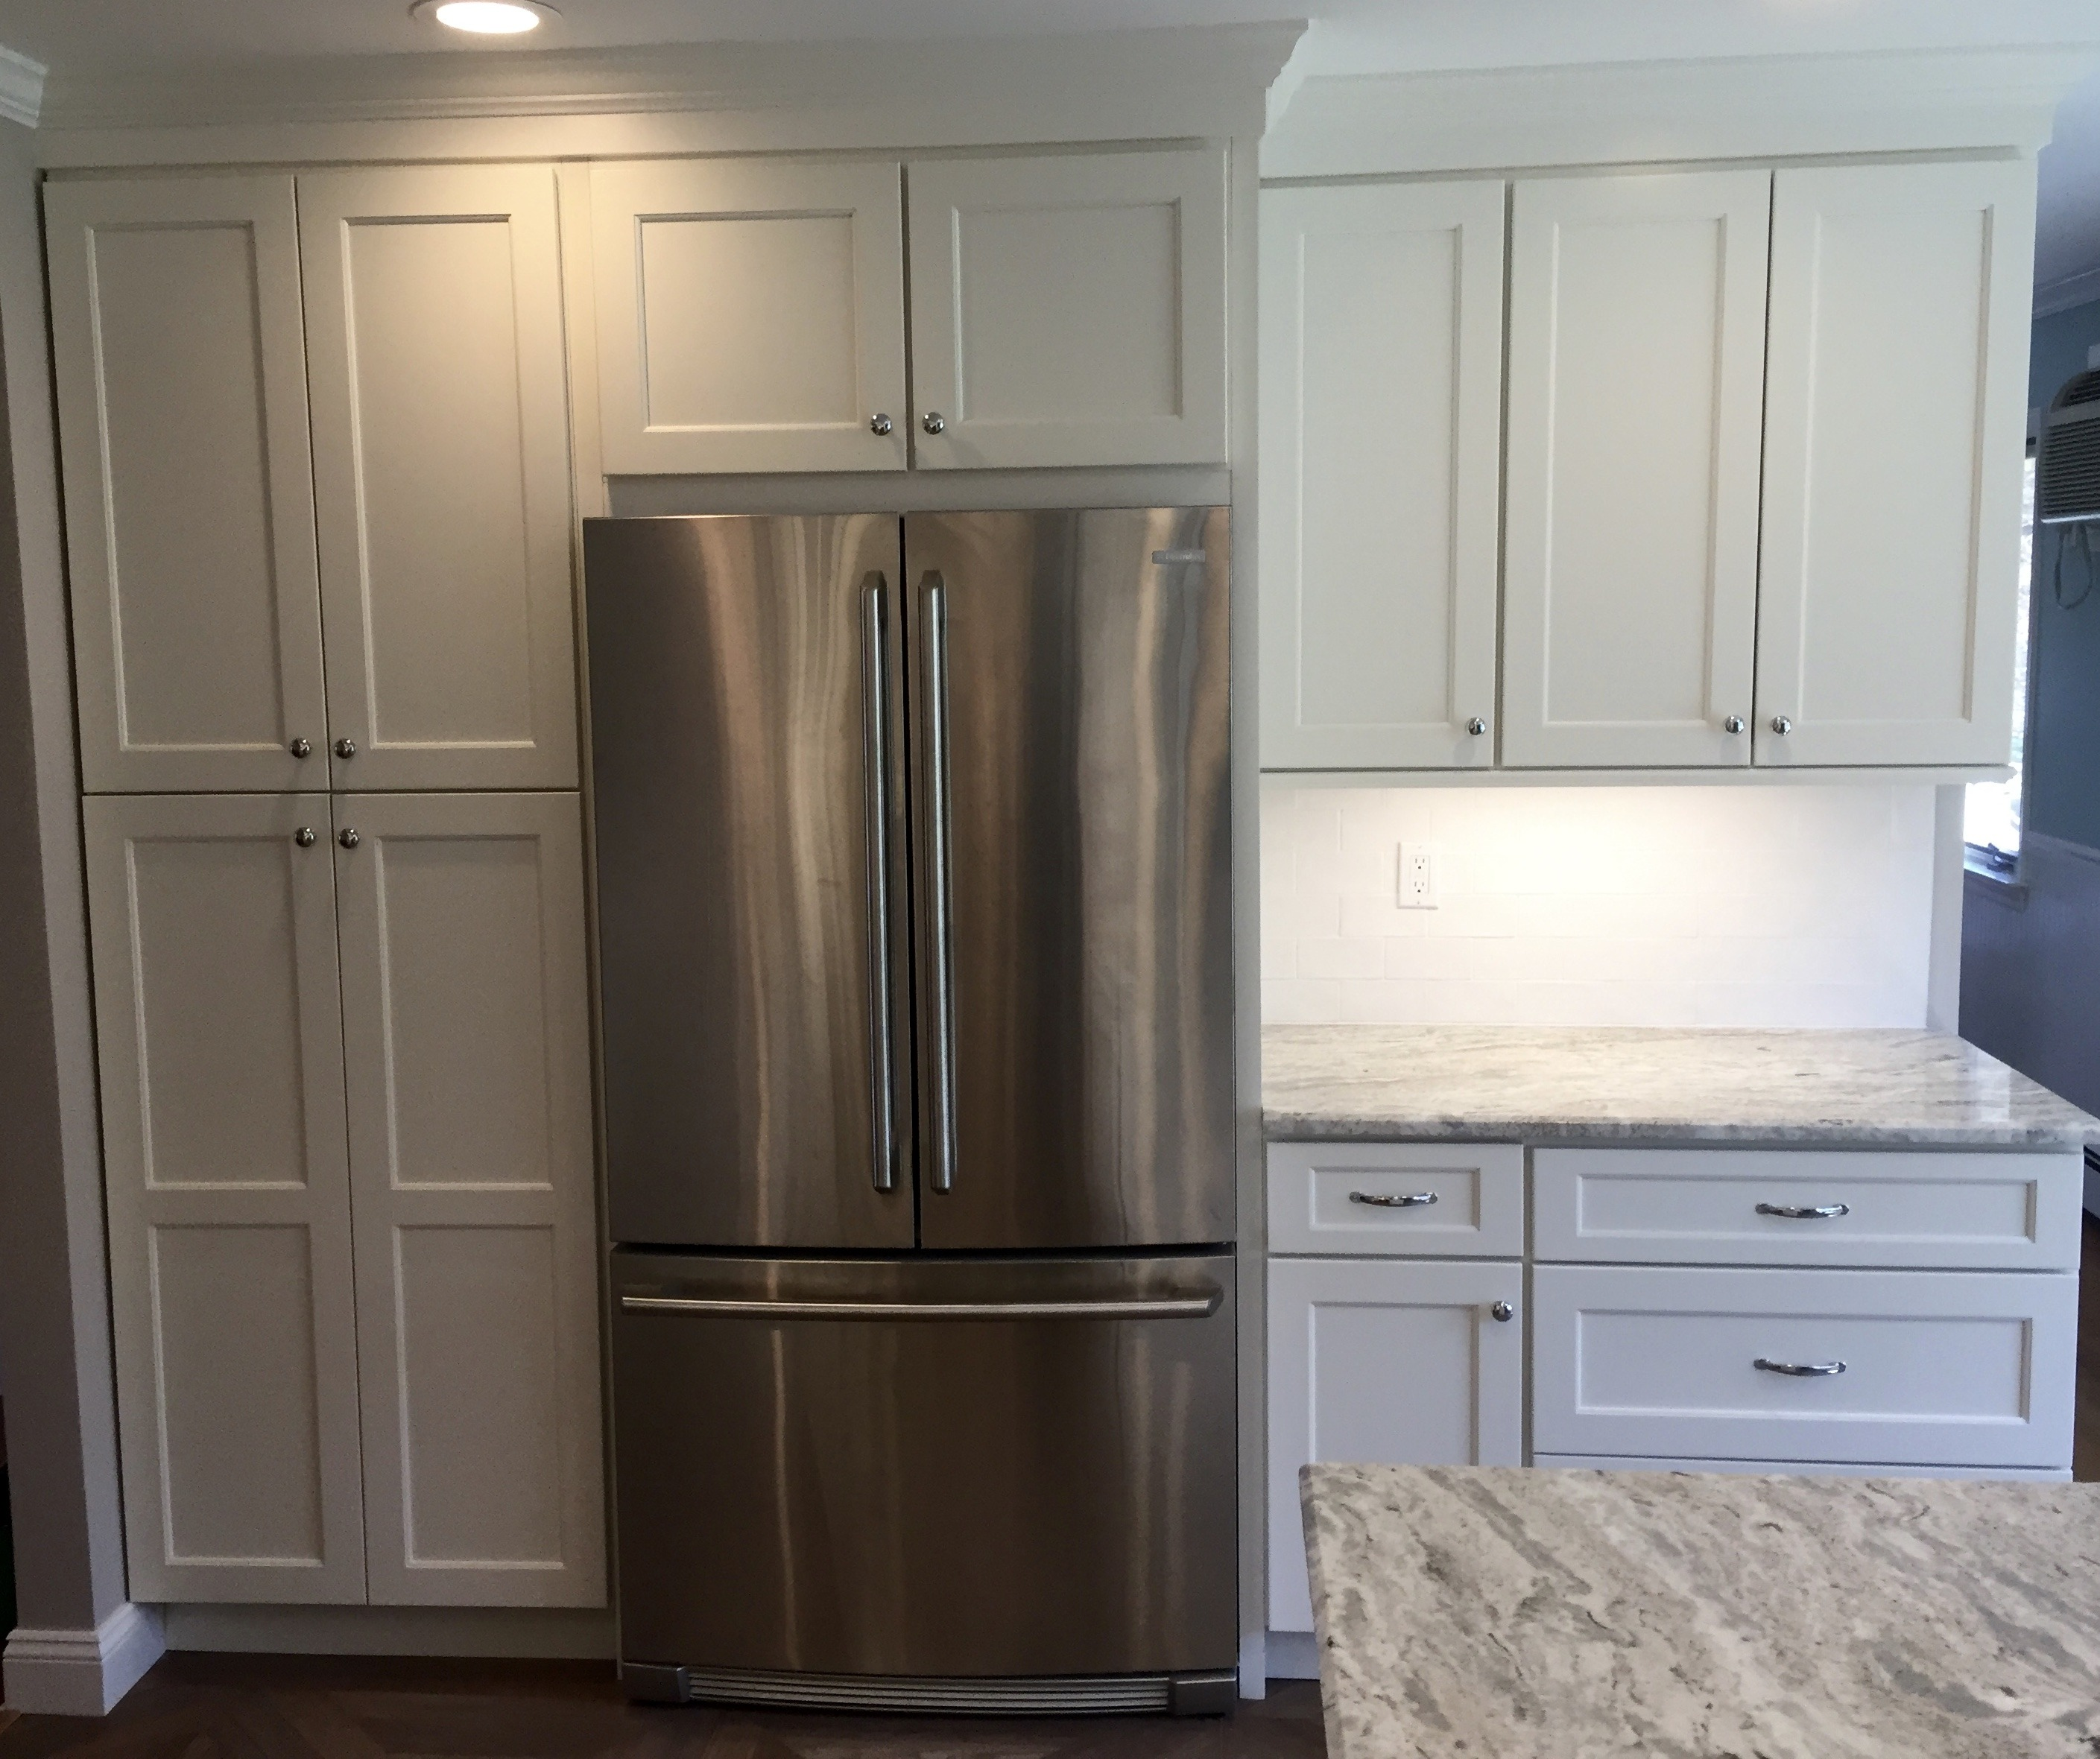 After, relocating fridge